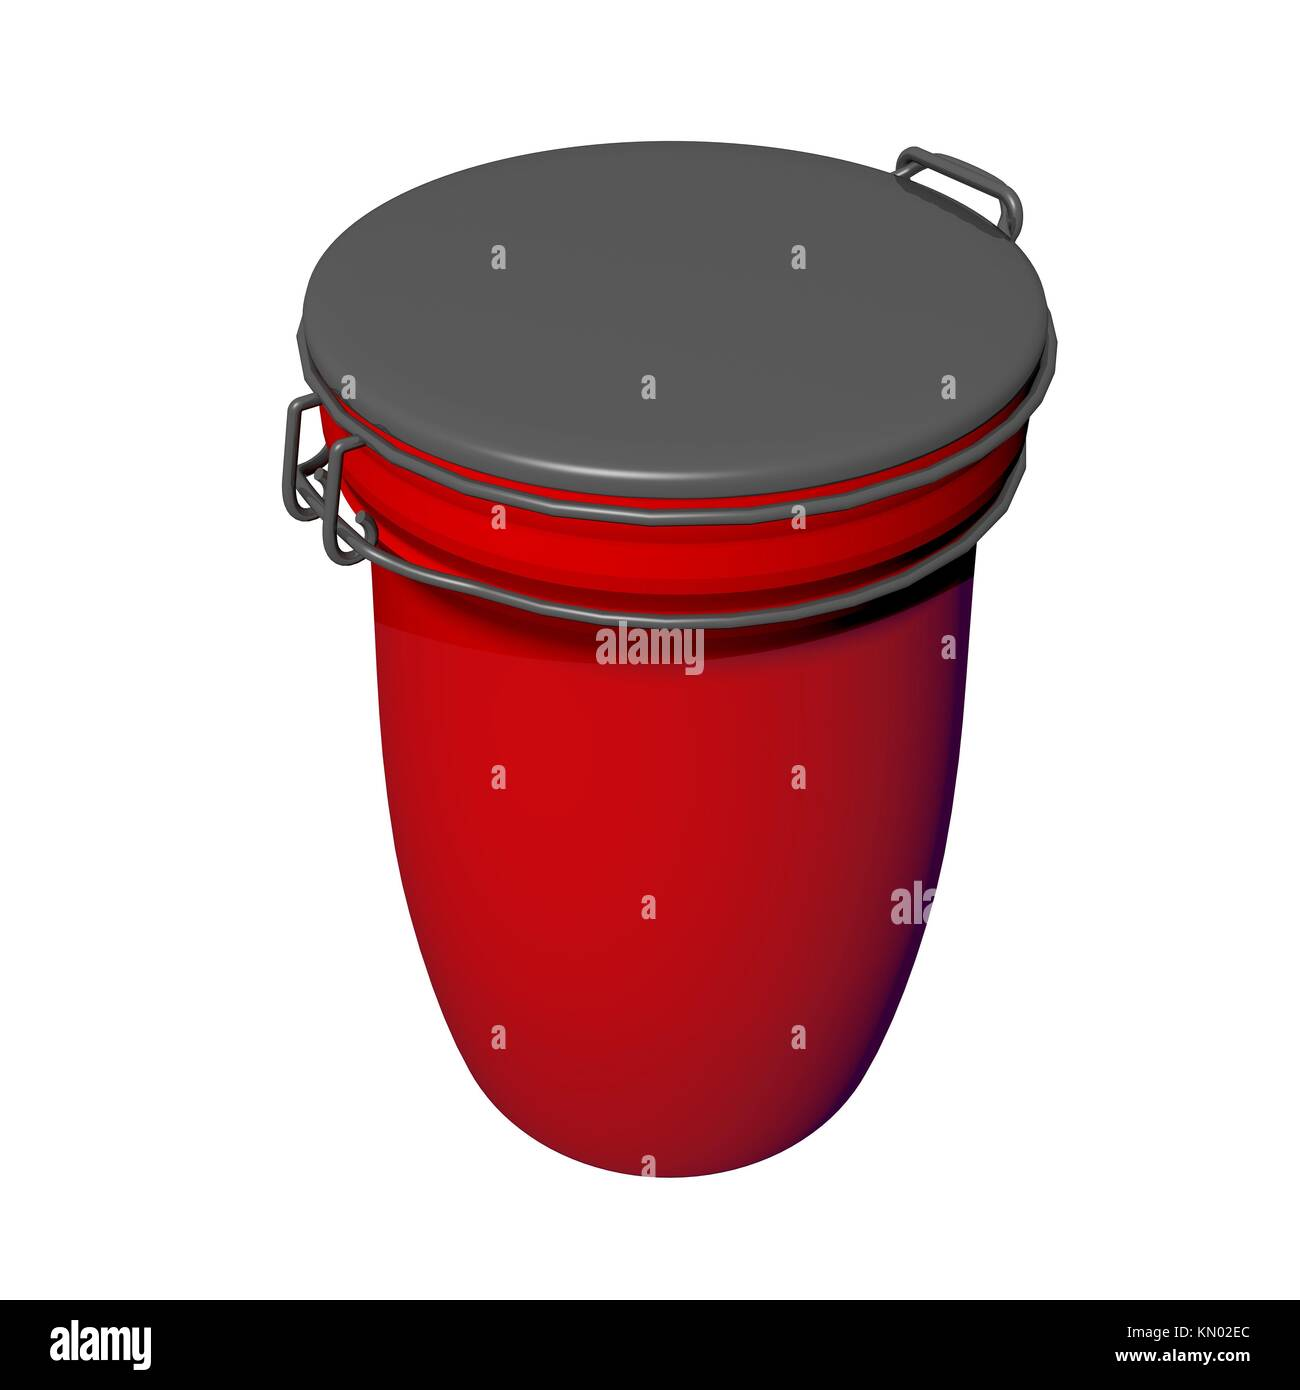 Red and grey jar with lid lock, 3D illustration, isolated against a white background - Stock Image